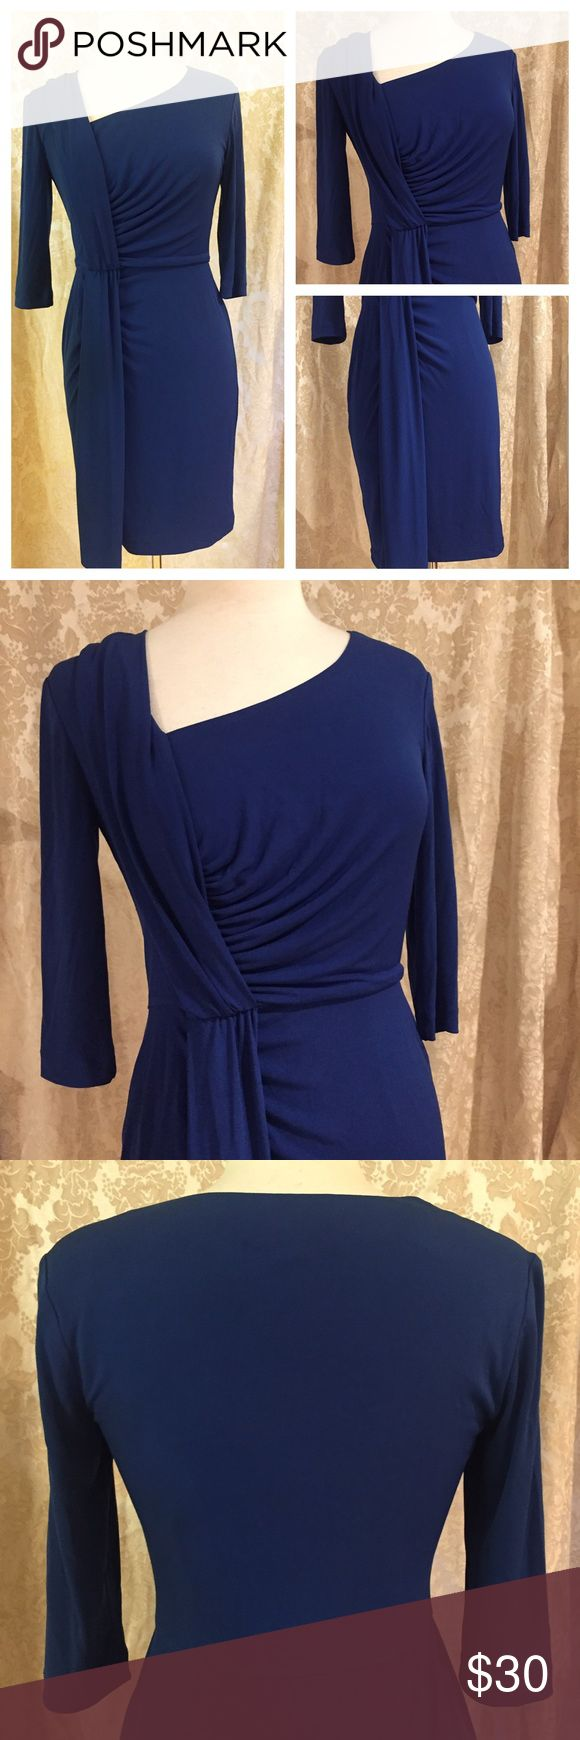 Donna Ricco royal blue dress Gorgeous Donna Ricco royal blue dress. Pull over style, perfect gathers and non wrinkle fabric. This dress can travel and will be a closet staple. Size 2 Donna Ricco Dresses Midi